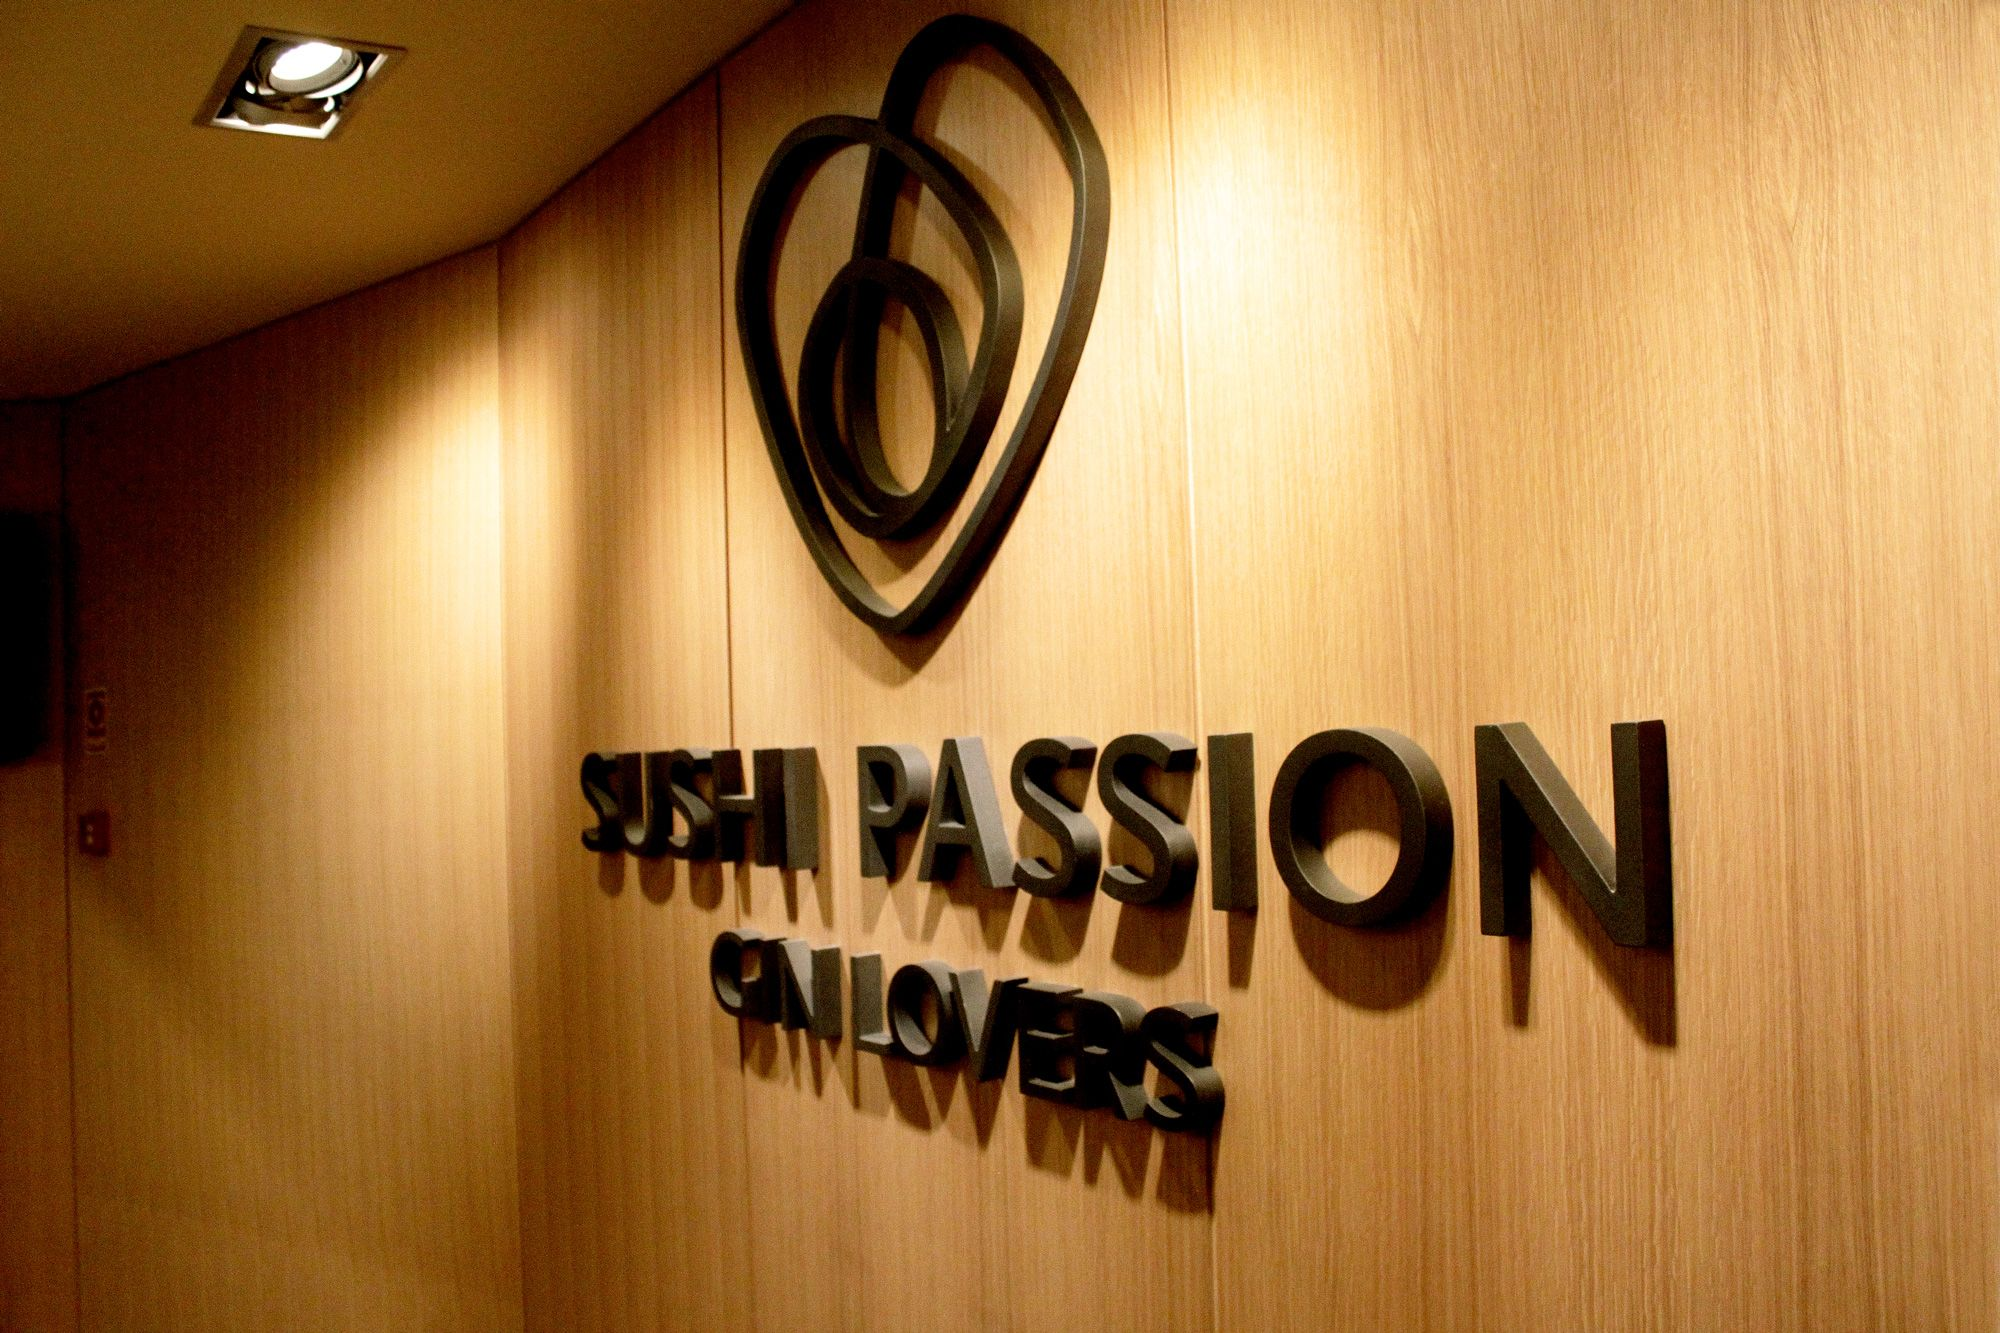 Logotipo na Parede do Restaurante Sushi Passion Gin Lovers